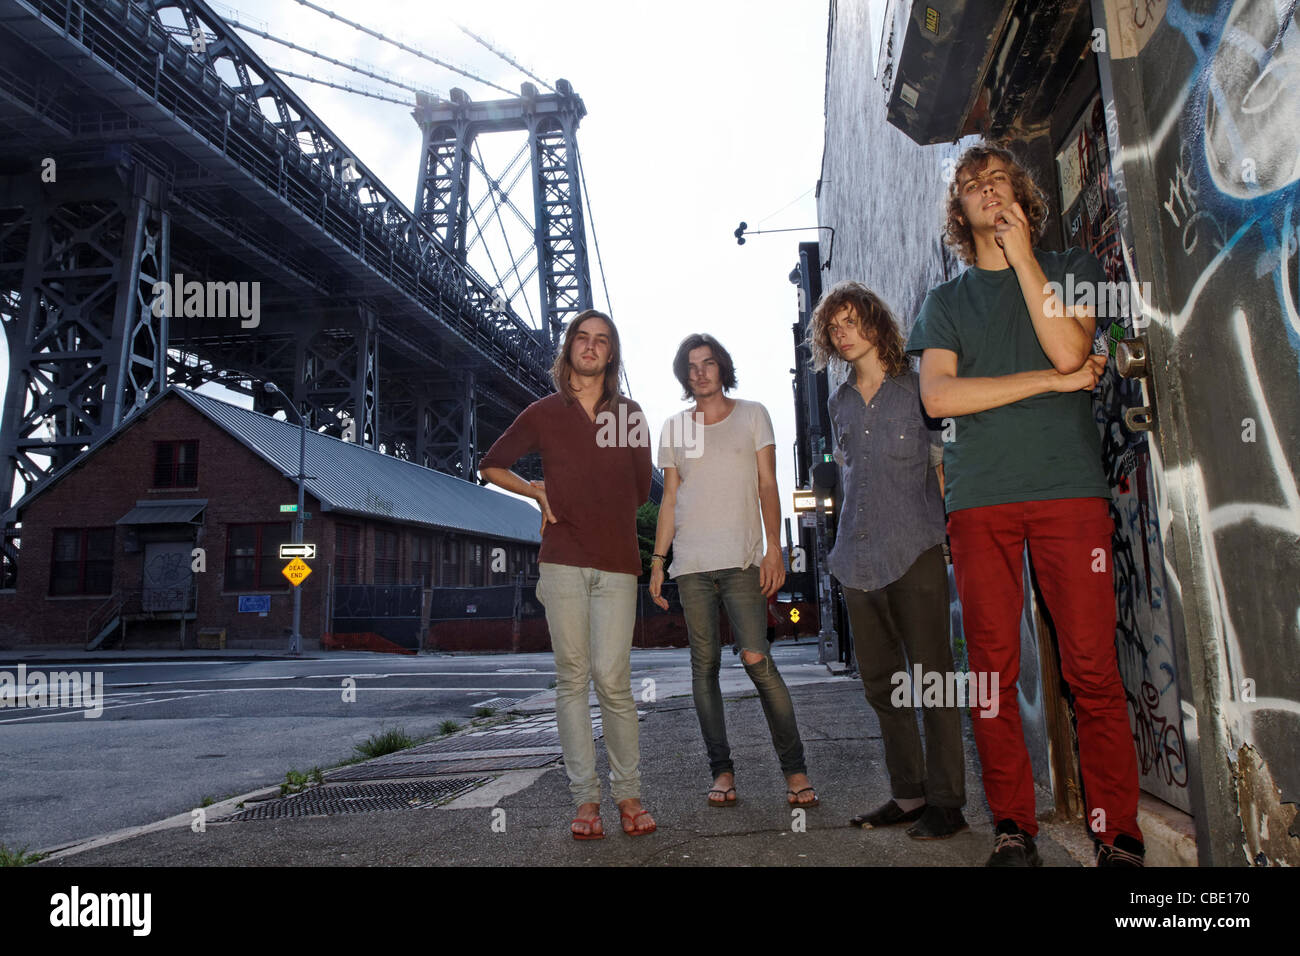 Tame Impala, from Perth, Australia pictured in New York City, the culmination of a tour of the United States. - Stock Image